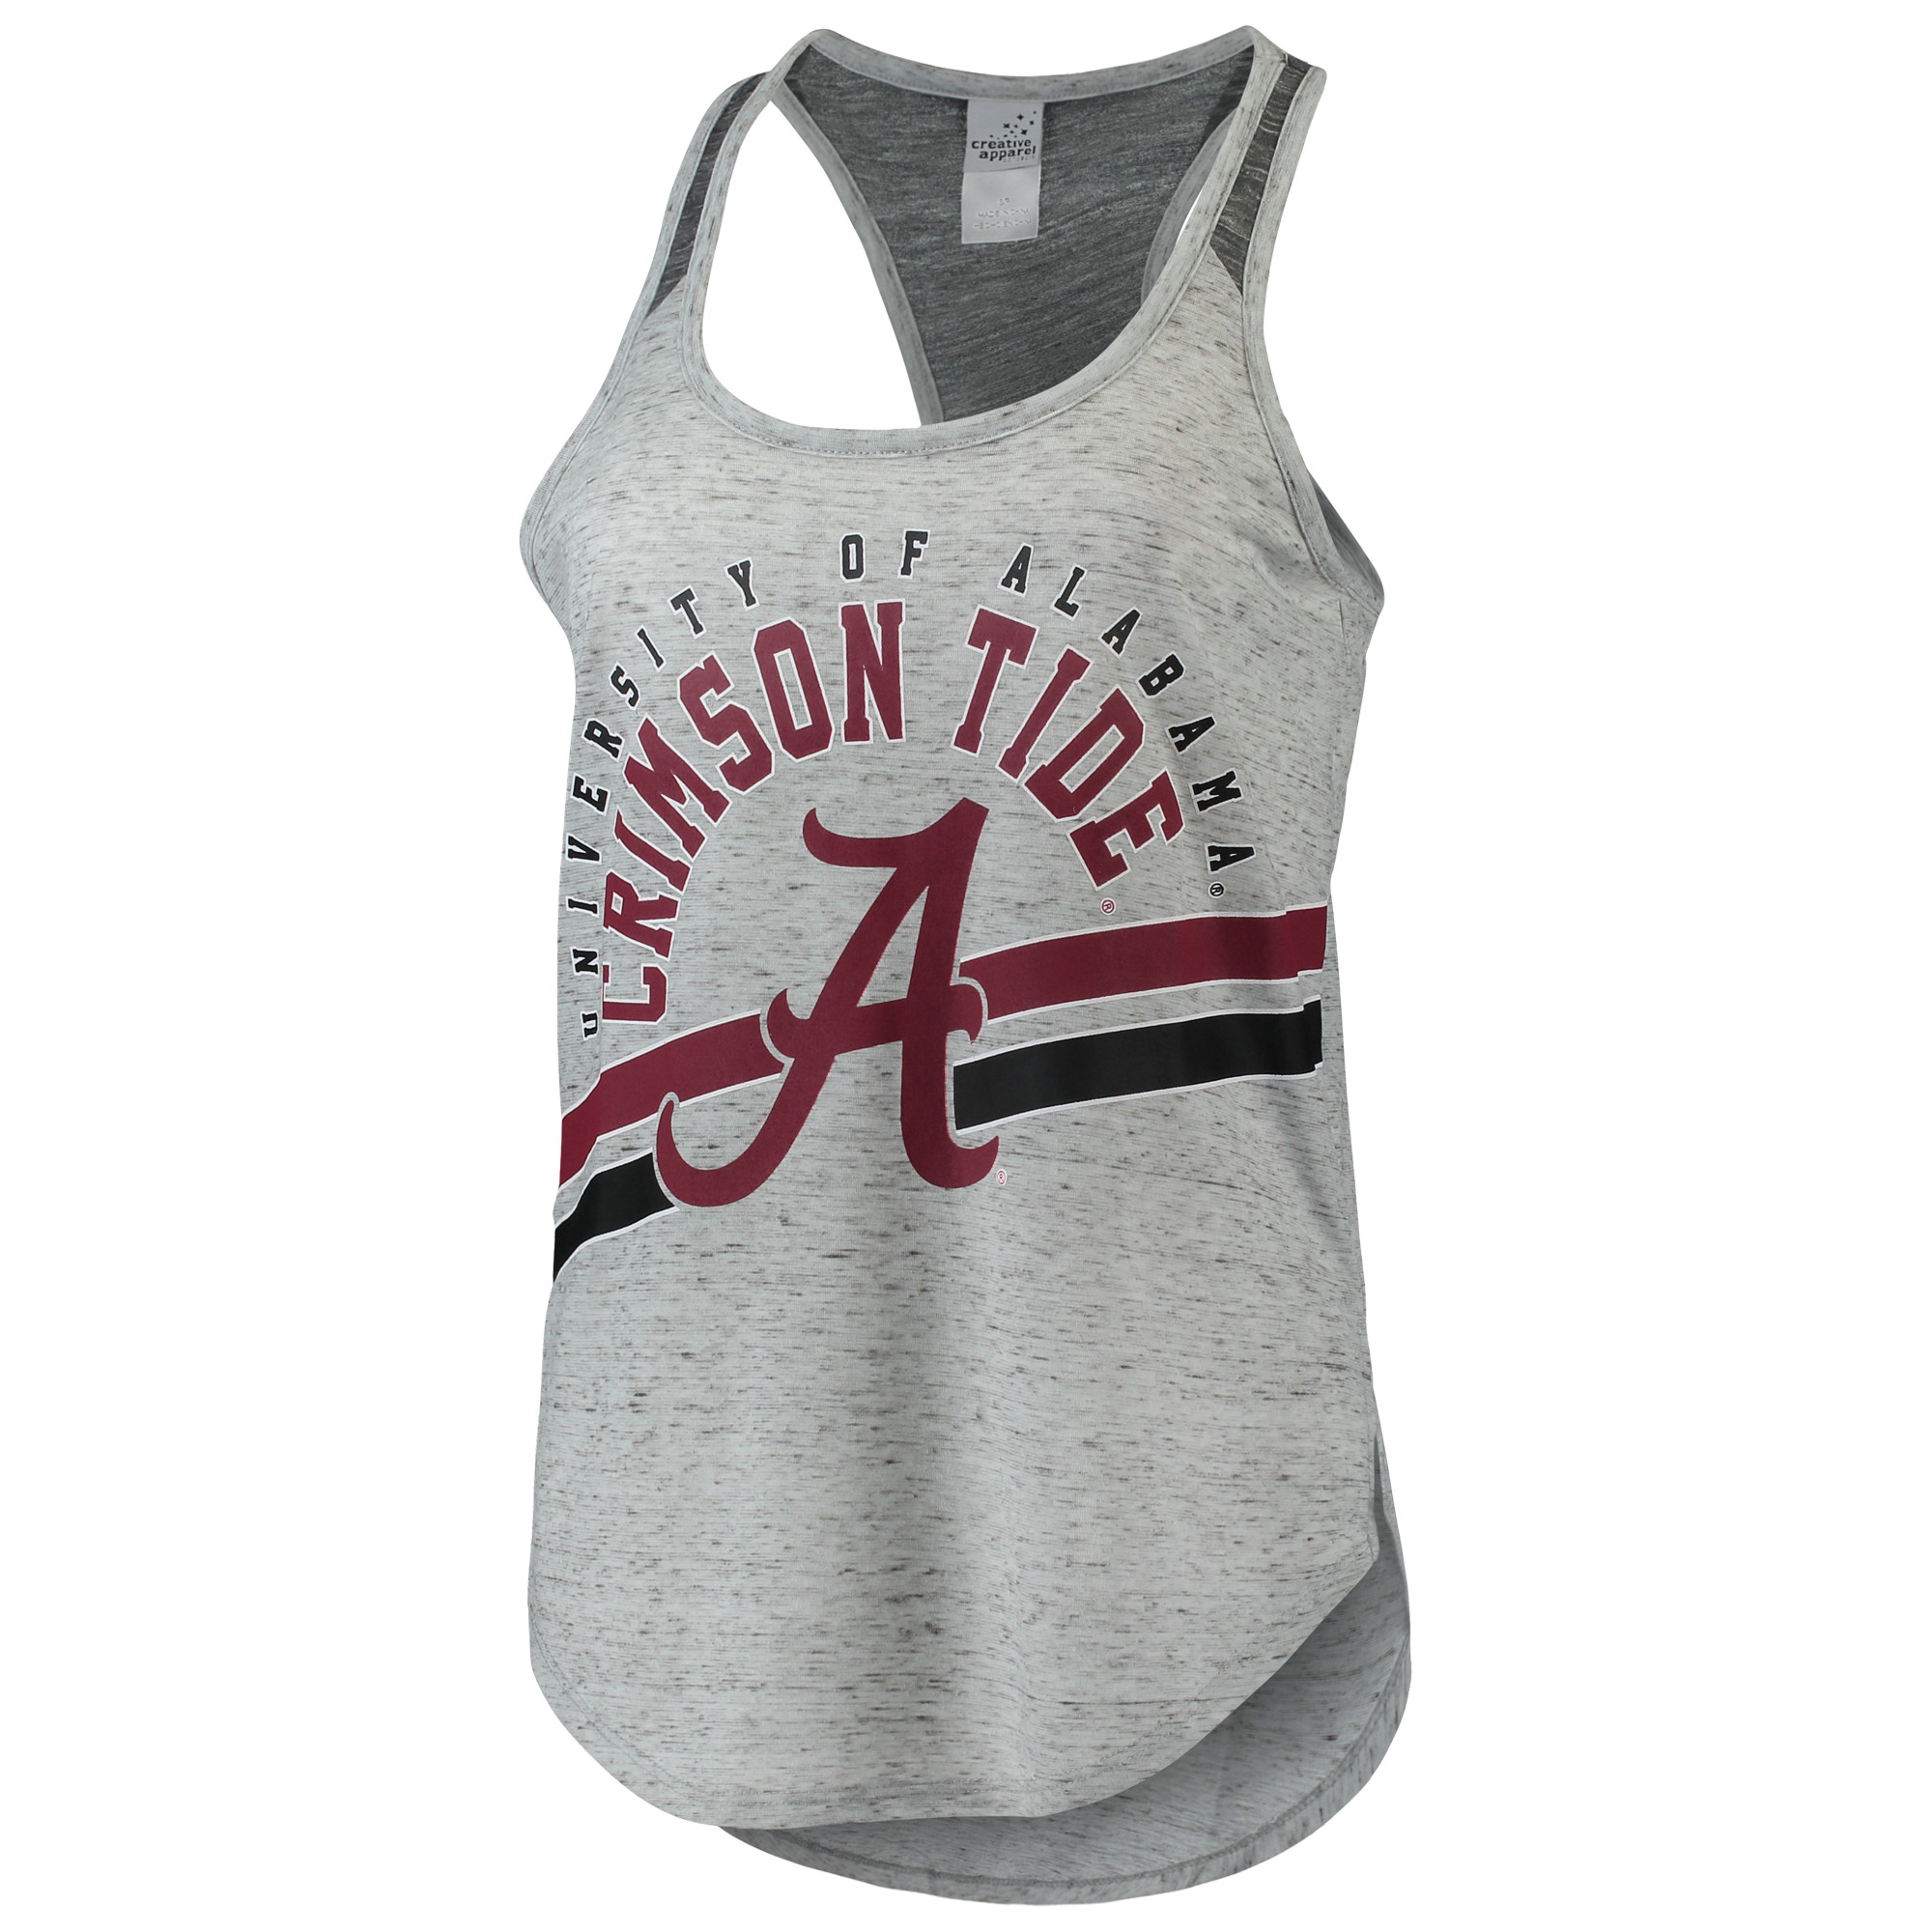 Women's Gray Alabama Crimson Tide Dual Stripe Racerback Tank Top